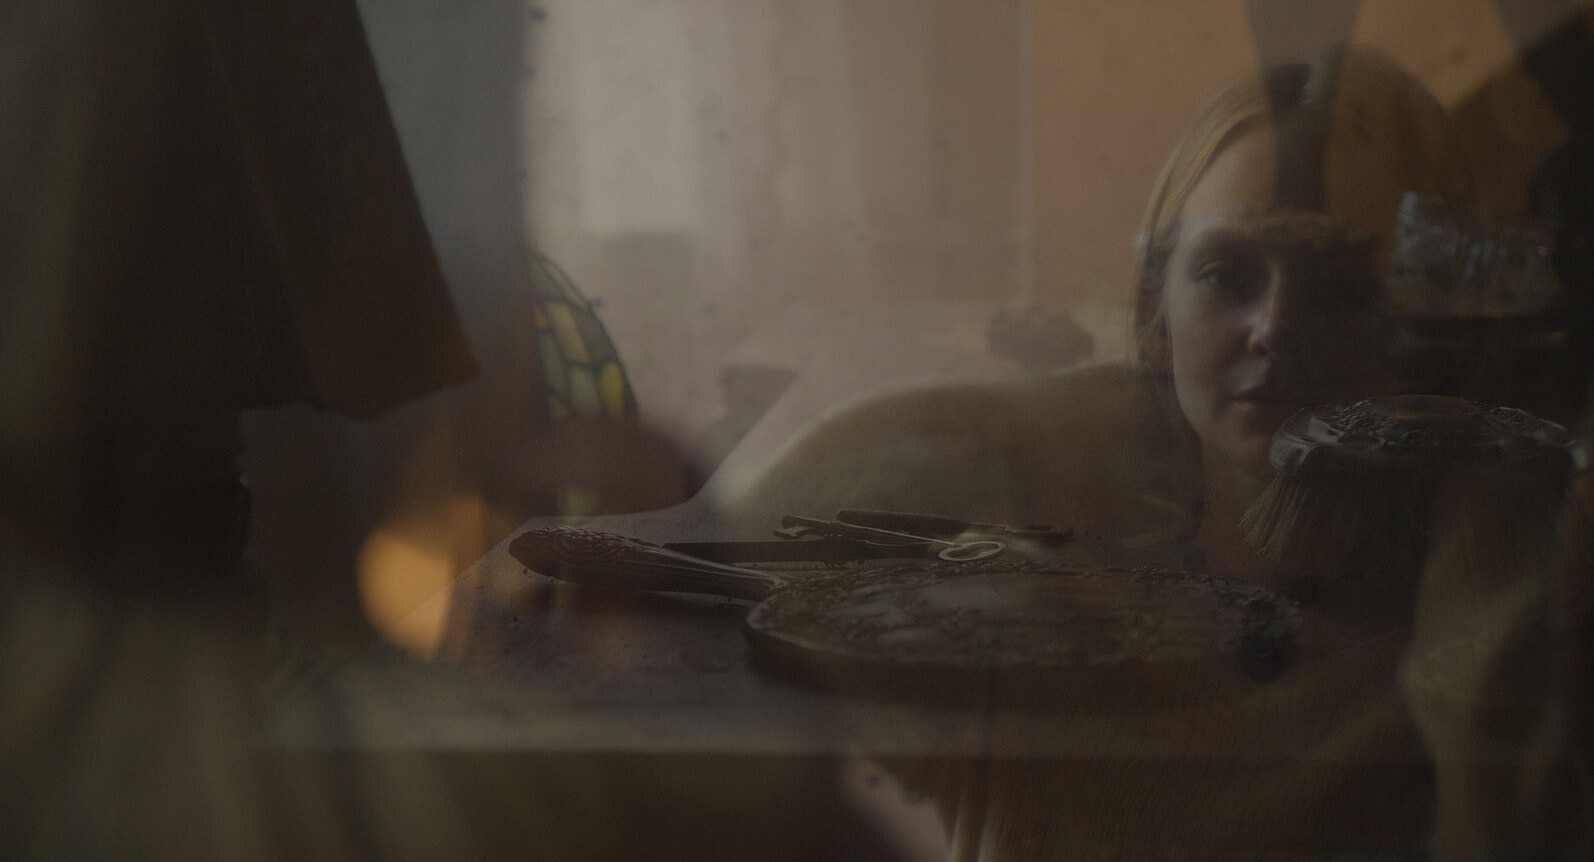 sweet sweet lonely girl2 1 - Fantastic Fest 2016: Sweet, Sweet Lonely Girl Looks Like a Return to Classic Gothic Horror